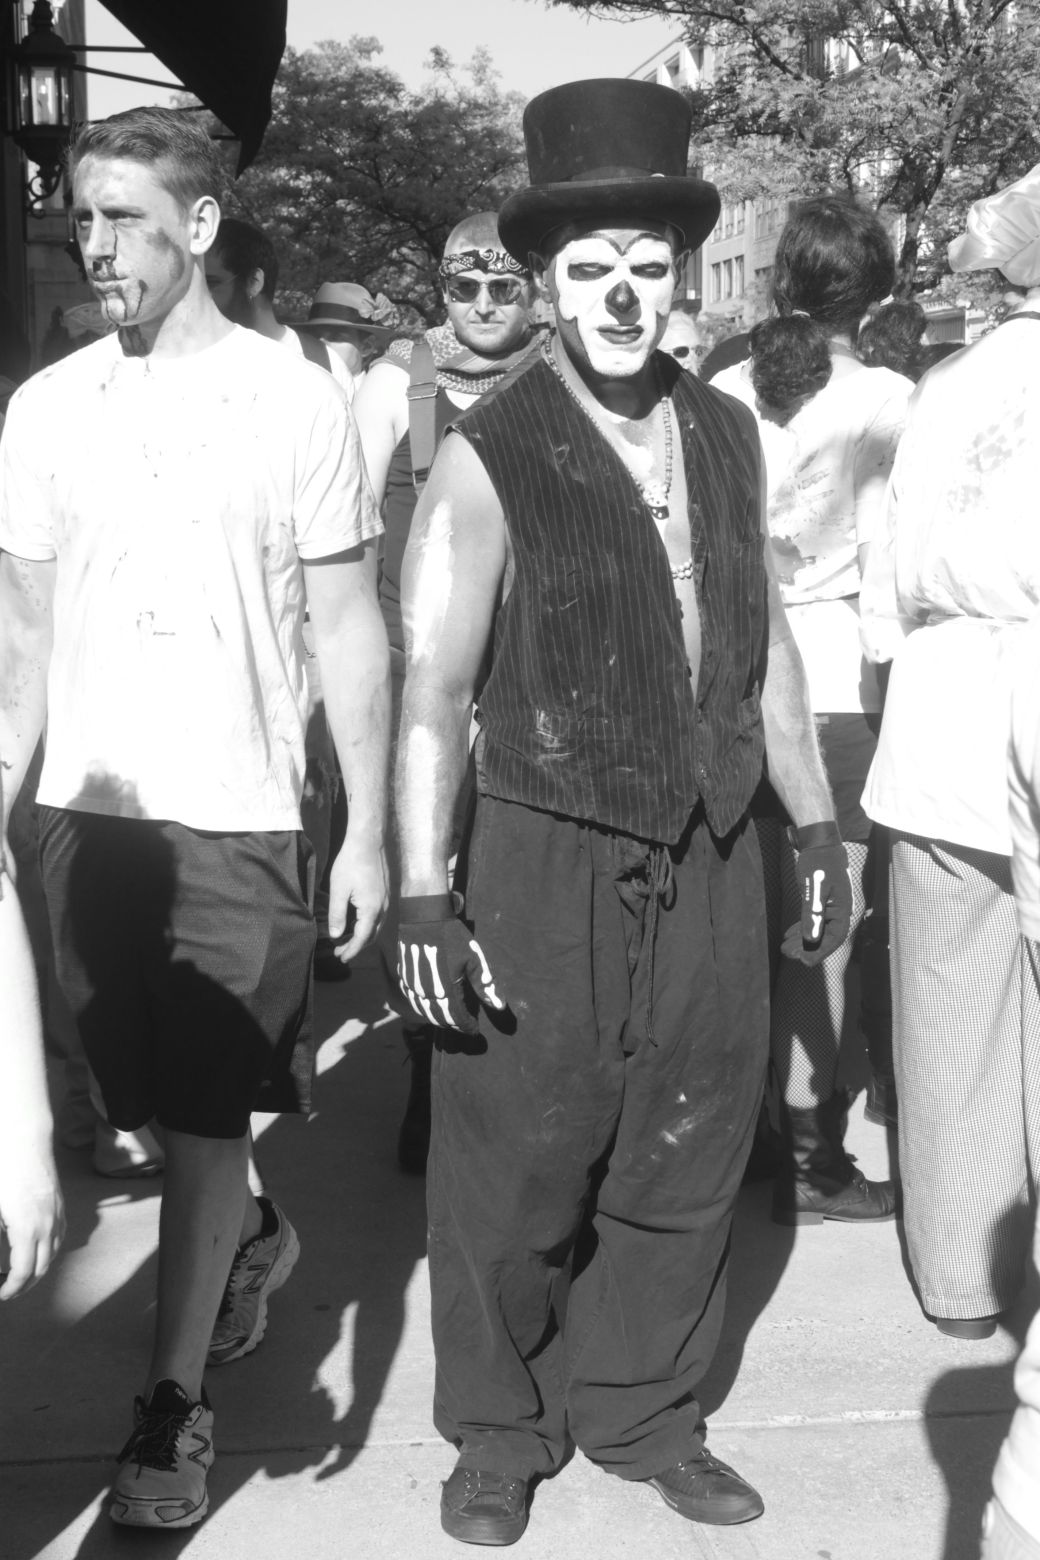 boston zombie walk may 17 58